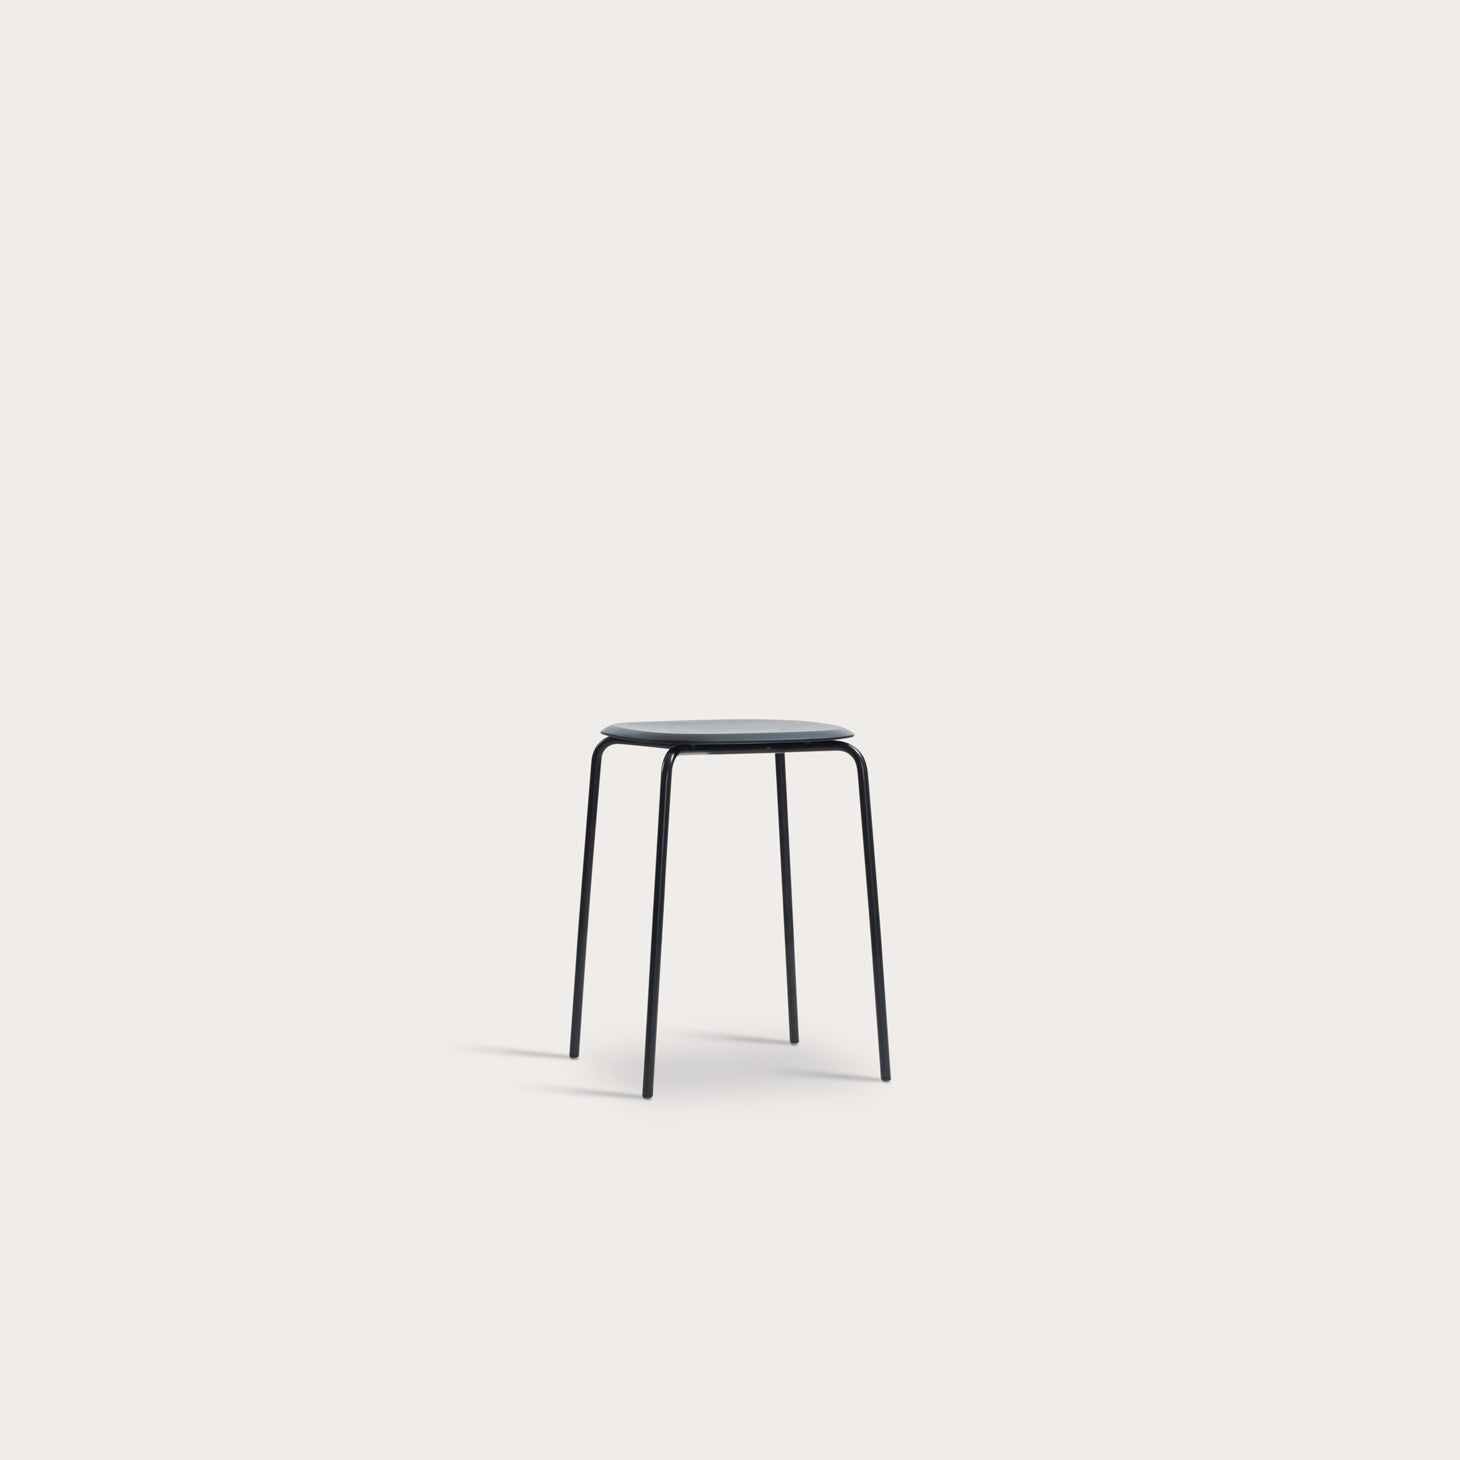 Okito Stool Seating Laeufer & Keichel Designer Furniture Sku: 006-120-10124